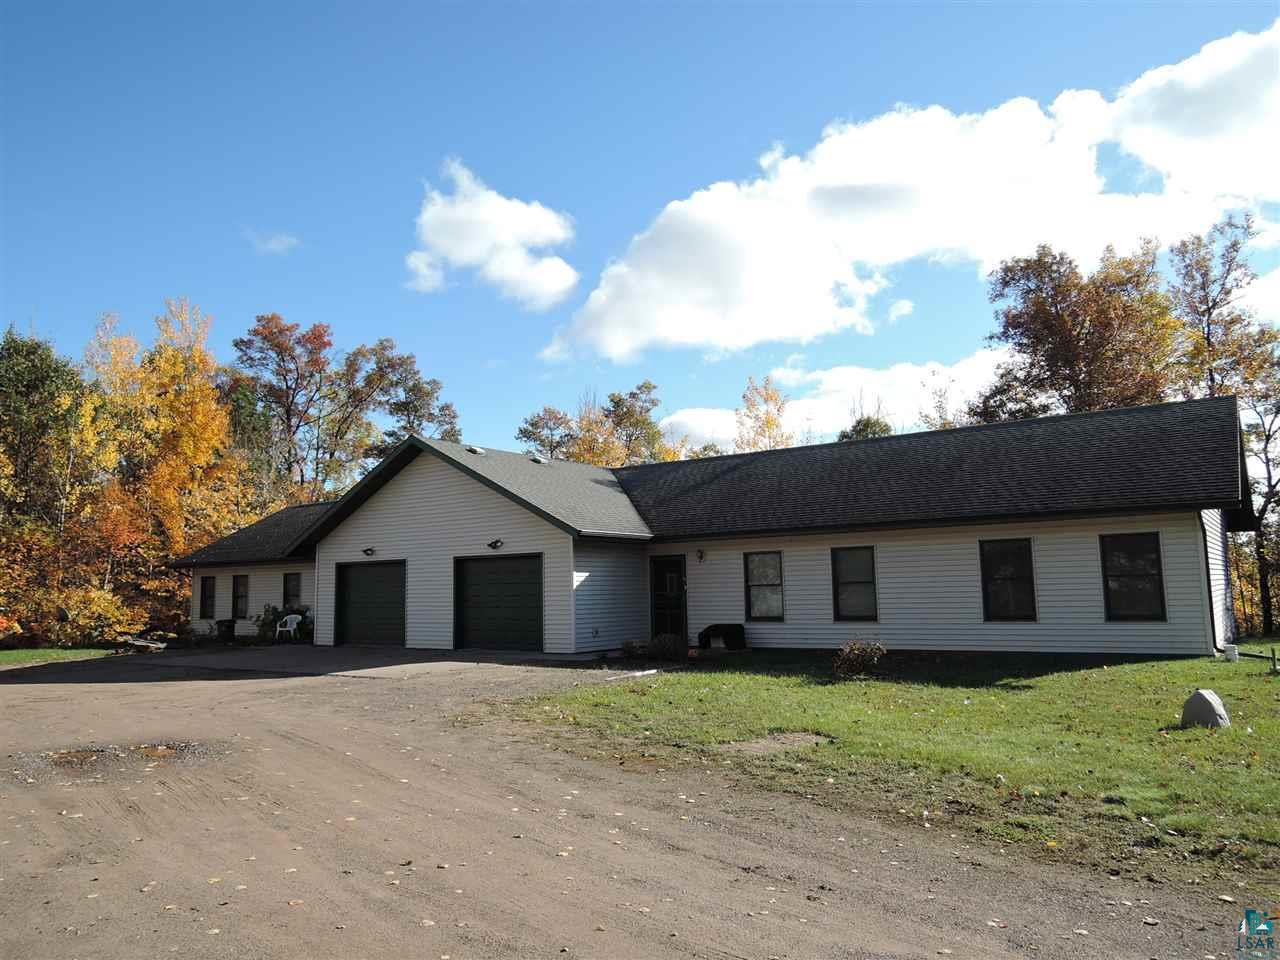 Sales Event, the List price is $260,000 w/an opening bid of $245,000!  Property may be sold any time prior to event. Offers are subject to Seller?s approval. Side by side duplex ranch on 1.26 acres all one level on dead end road. Excellent opportunity for steady cash flow with with two dependable renters paying their monthly rent and pay for their separate utilities for gas, electric, water/sewer bills. Exceptional value, the cost to build new would be approx. $250 per square foot this home is $93 per square foot. Each unit has 1+ insulated finished garage with power, two bedrooms, kitchen, dining area and large bathroom, patio doors to large deck, located on a dead end road in a nice quiet neighborhood close to Iron River!   Features open floor plan concept with a great room (living room) with gas fireplace, beautiful large kitchen with oak cabinets, dining room area with patio doors leading to a beautiful large deck with a privacy wall and nice back yard with a country feel with peace and tranquility. The master bedroom has access to the full bath with jetted tub and an extraordinary large walk-in closet. Included with this sale is (2) stoves, (2) refrigerators, (2) washers, (2) dryers, and ample closet and storage. This property is set up for another duplex building that will make an excellent additional income opportunity. See RealtyHive for additional disclosures and details, contact Sherri DeHahn License #57593-90 for any questions about this sales event (715)413-0230.